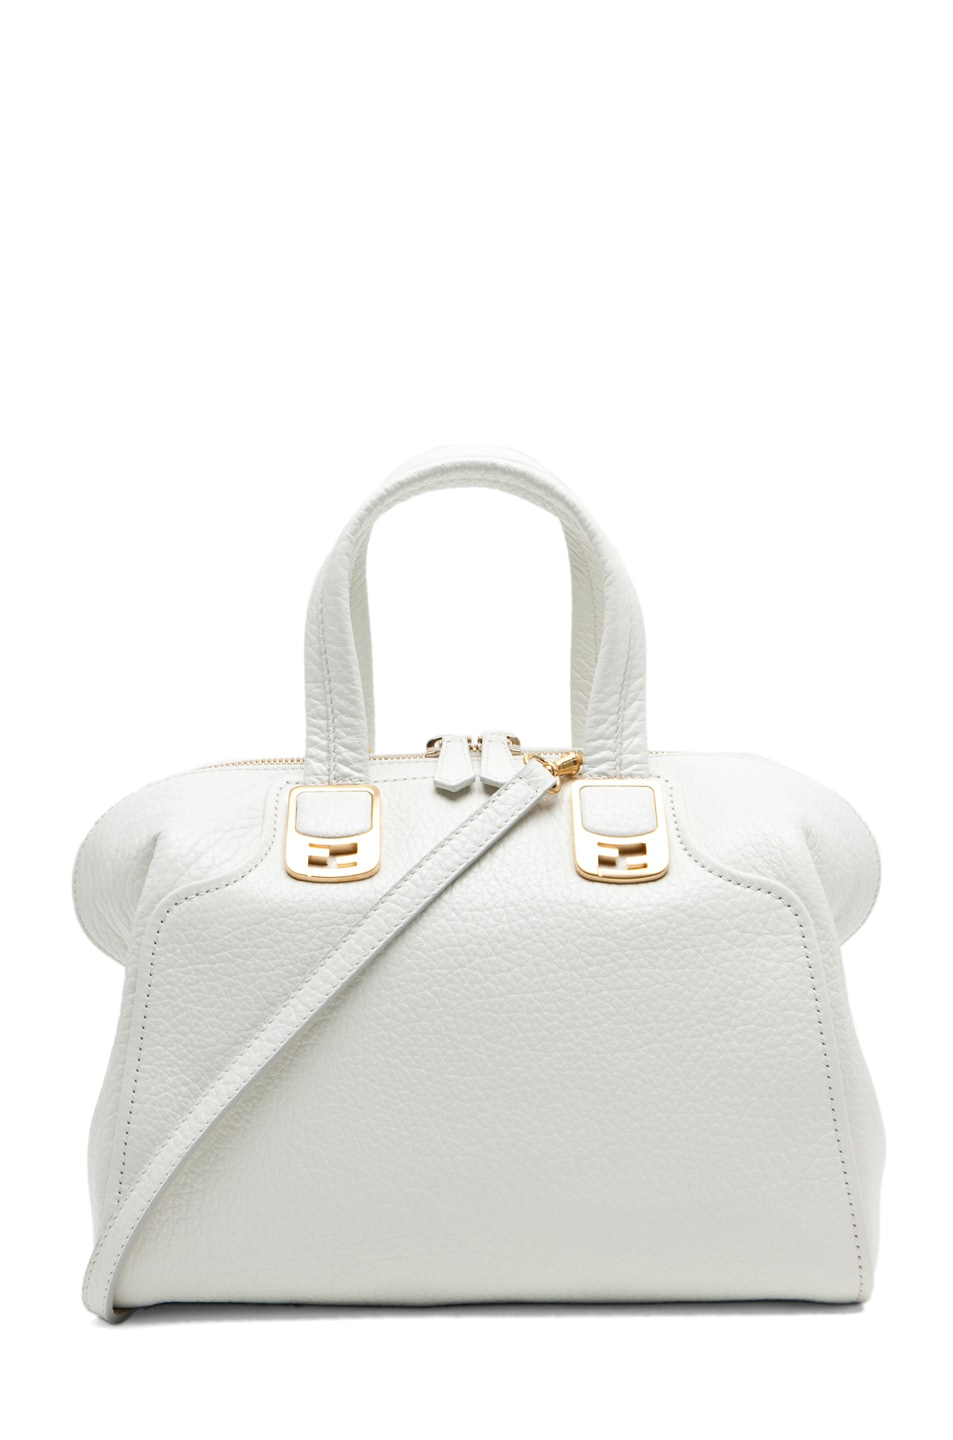 Image 1 of Fendi Medium Satchel Bag in White